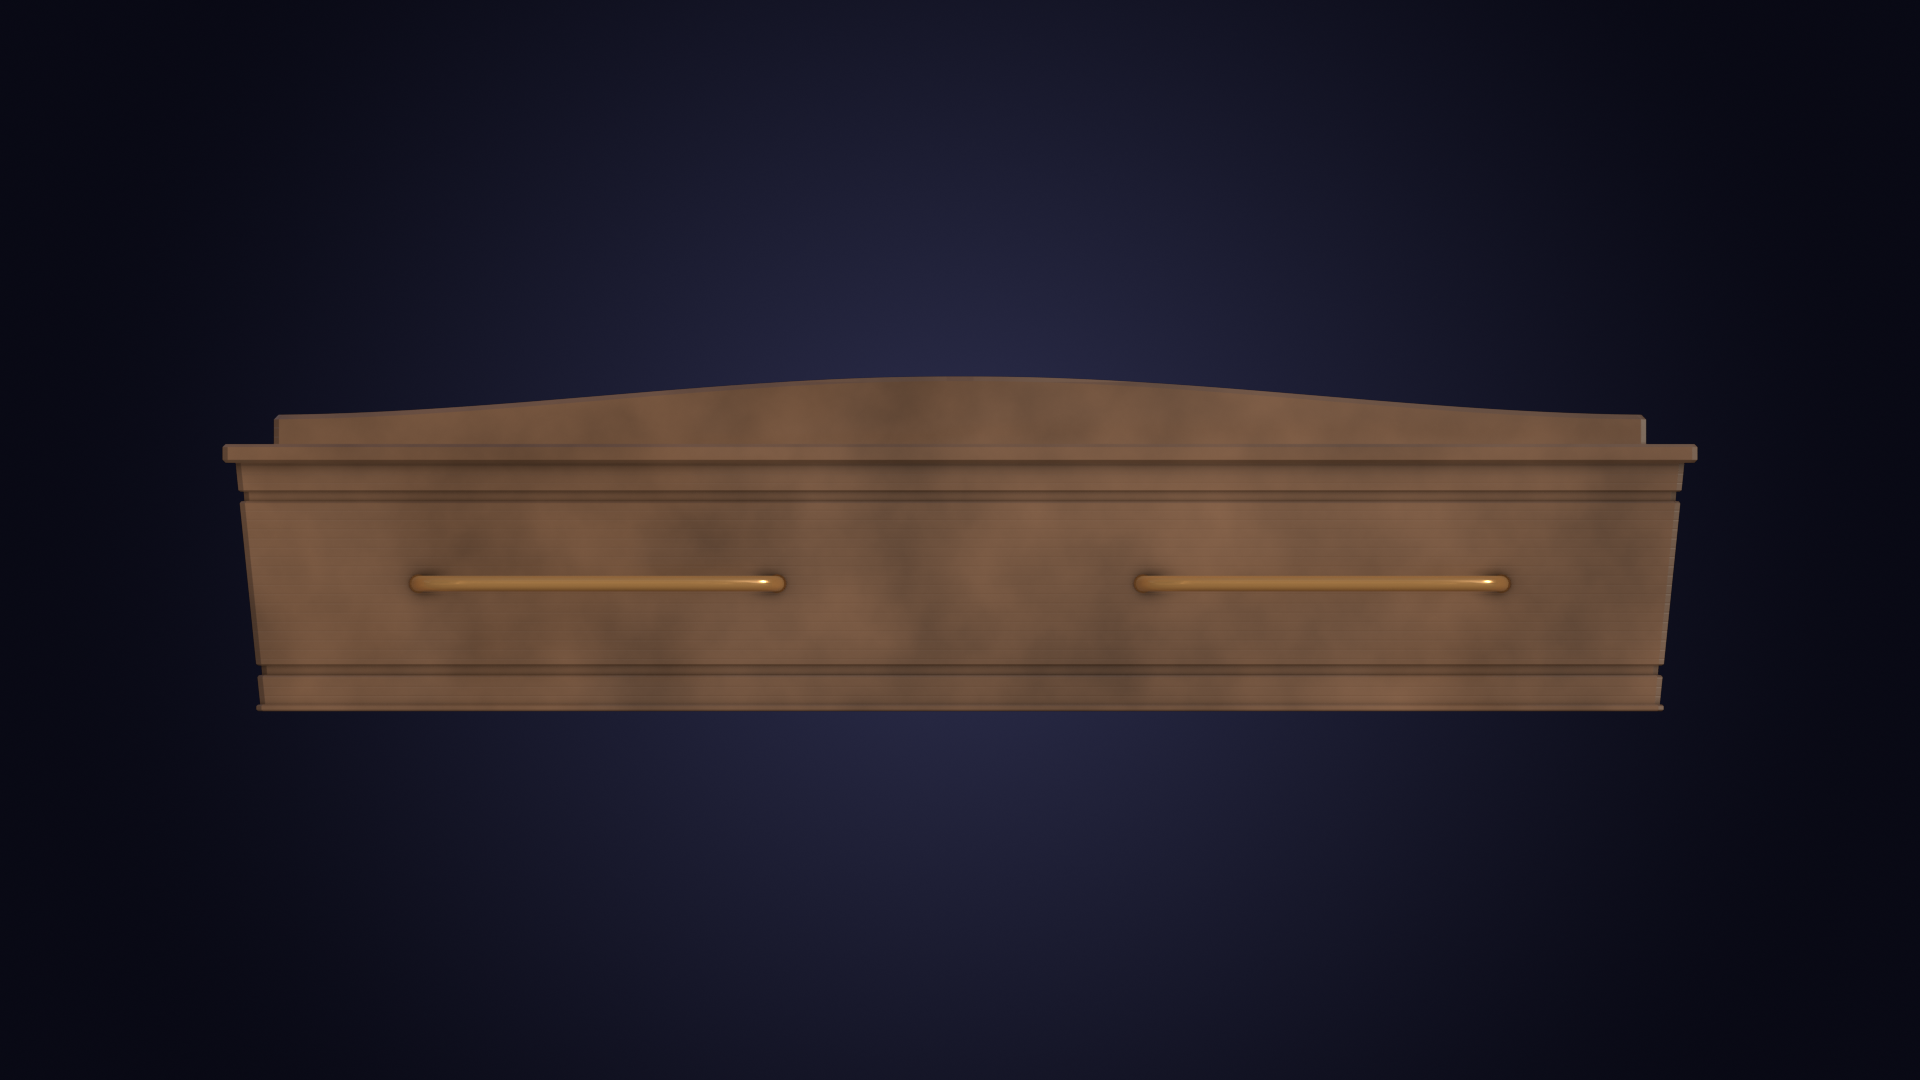 Wooden Coffin preview image 6